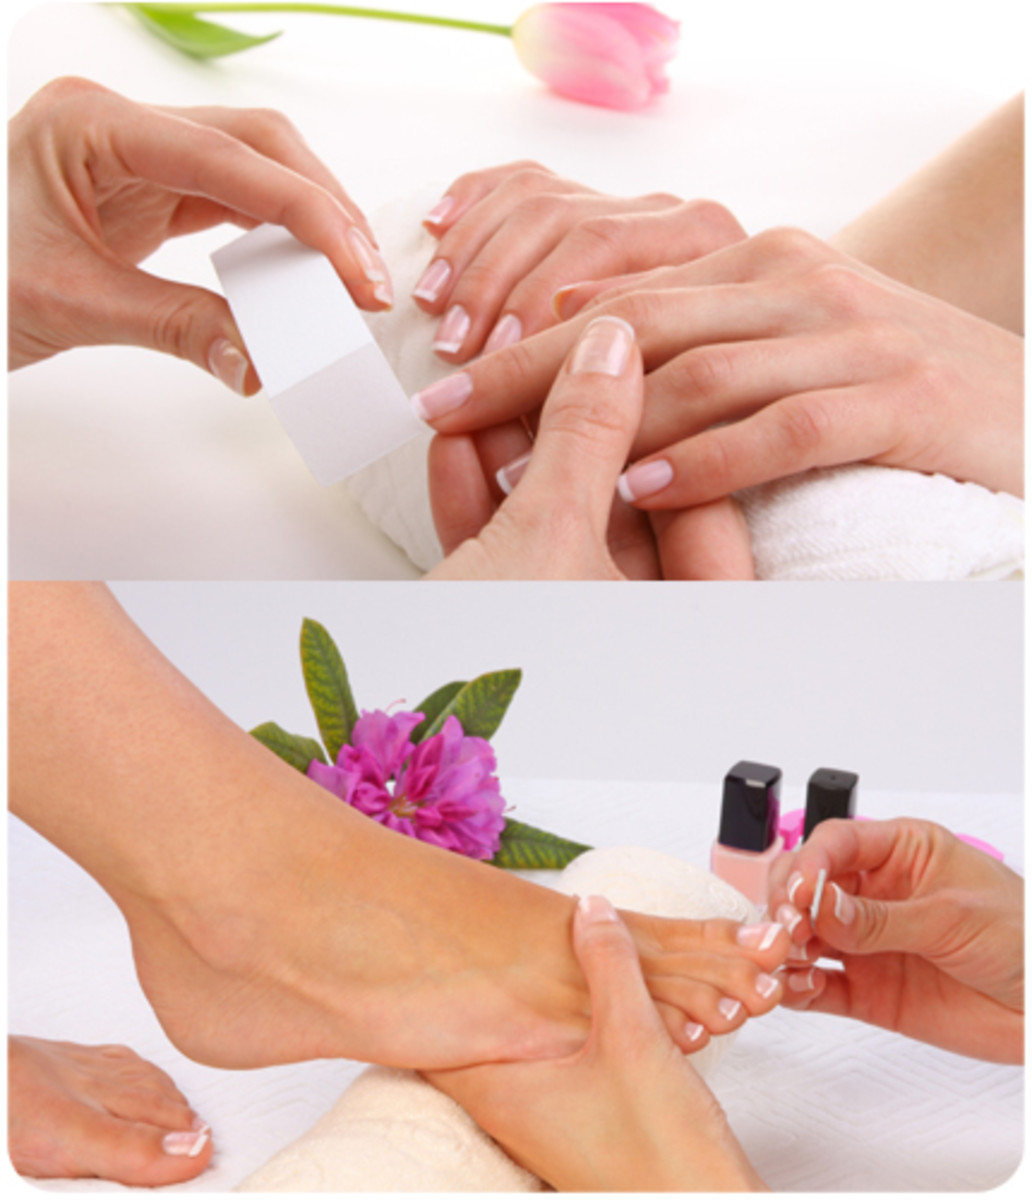 Massage treatments for hands and feet.